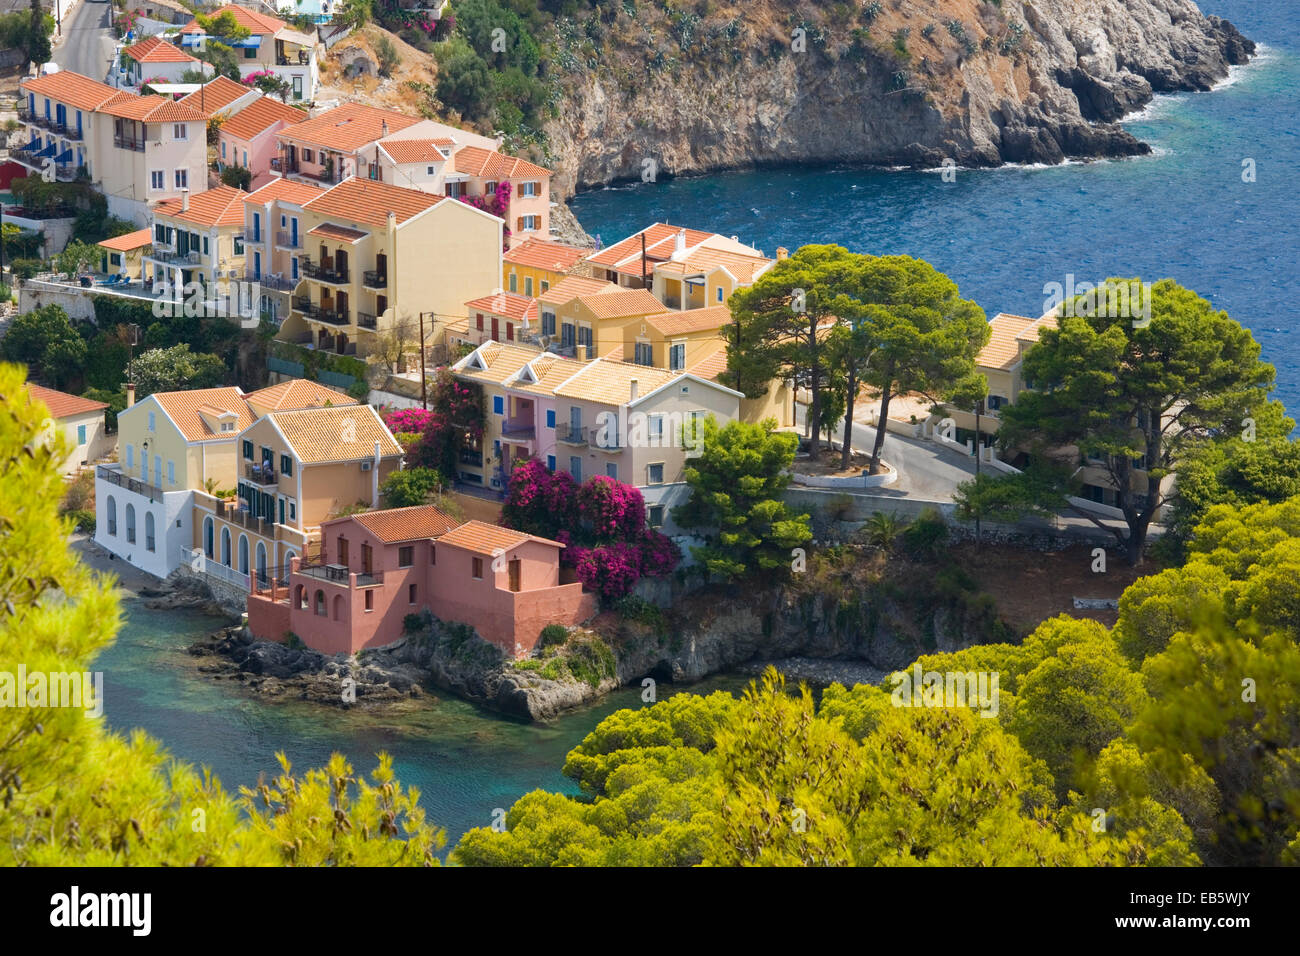 Asos, Kefalonia, Ionian Islands, Greece. View from hillside to pastel-coloured houses on isthmus above the harbour. - Stock Image